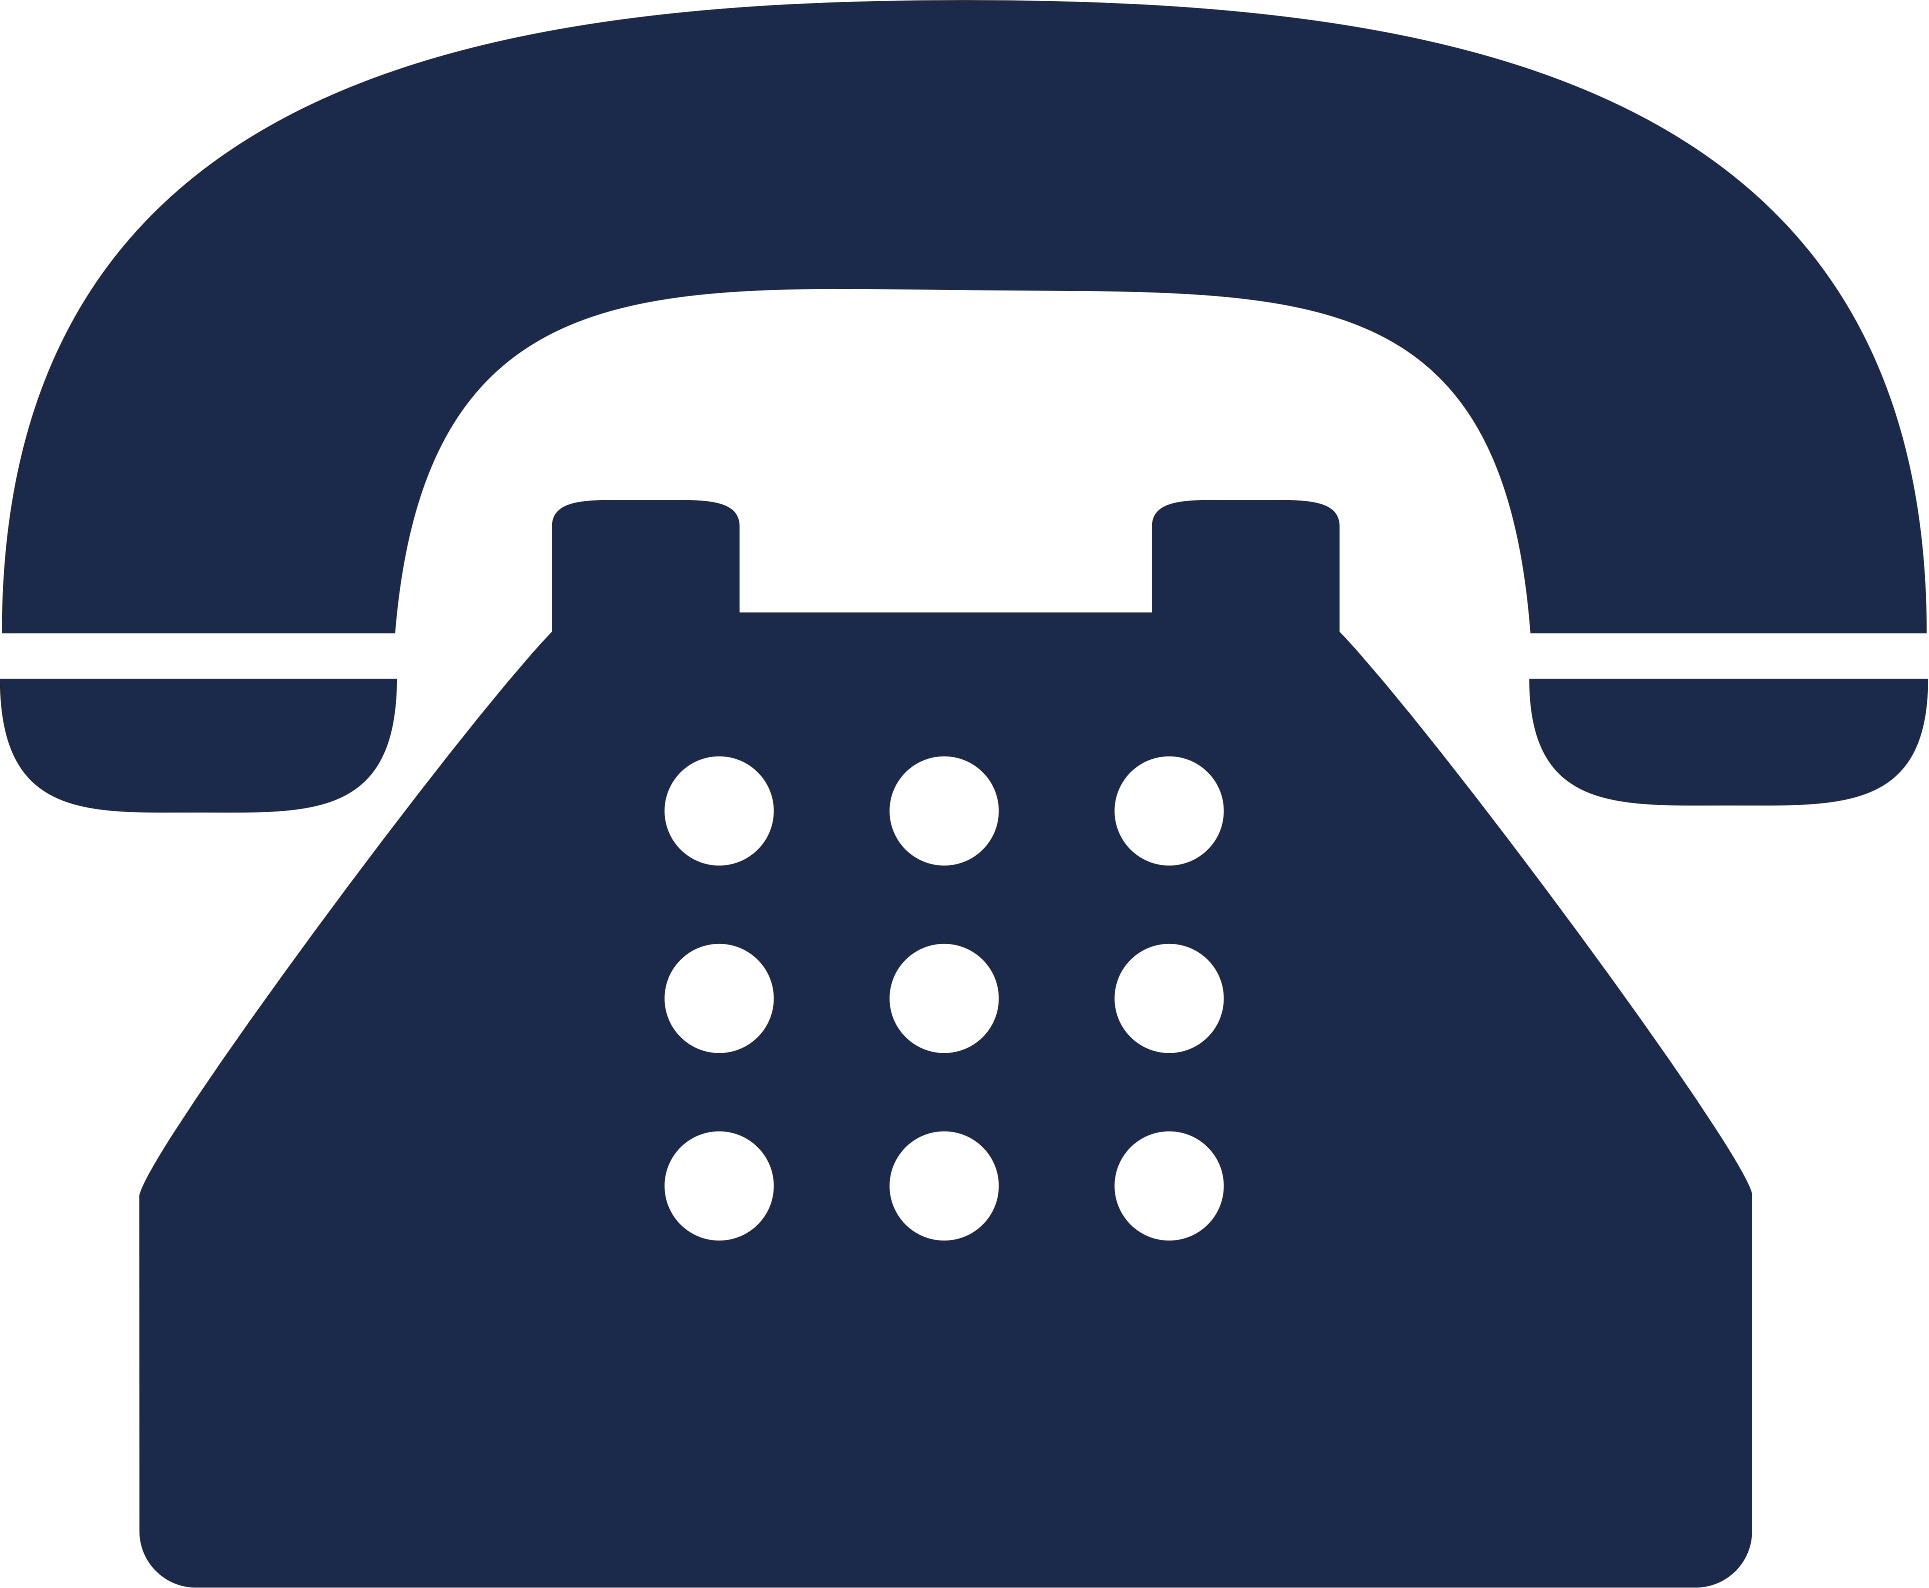 Clipart telephone voicemail, Clipart telephone voicemail.